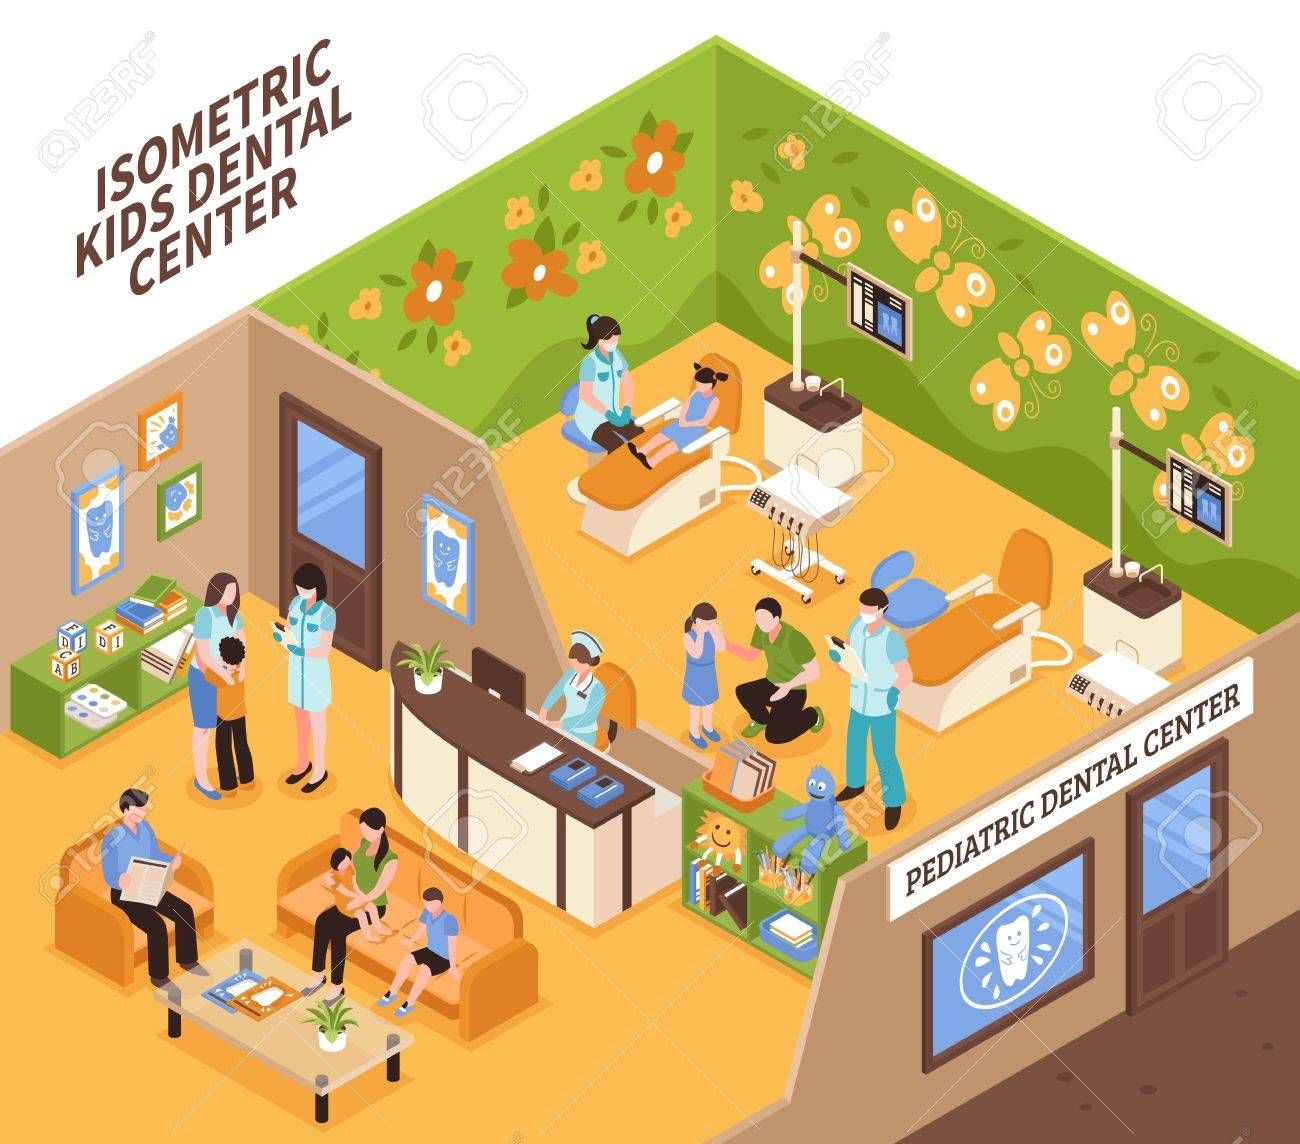 Pediatric dentist isometric vector illustration with children and their parents in kids dental center , #sponsored, #vector, #illustration, #isometric, #Pediatric, #dentist